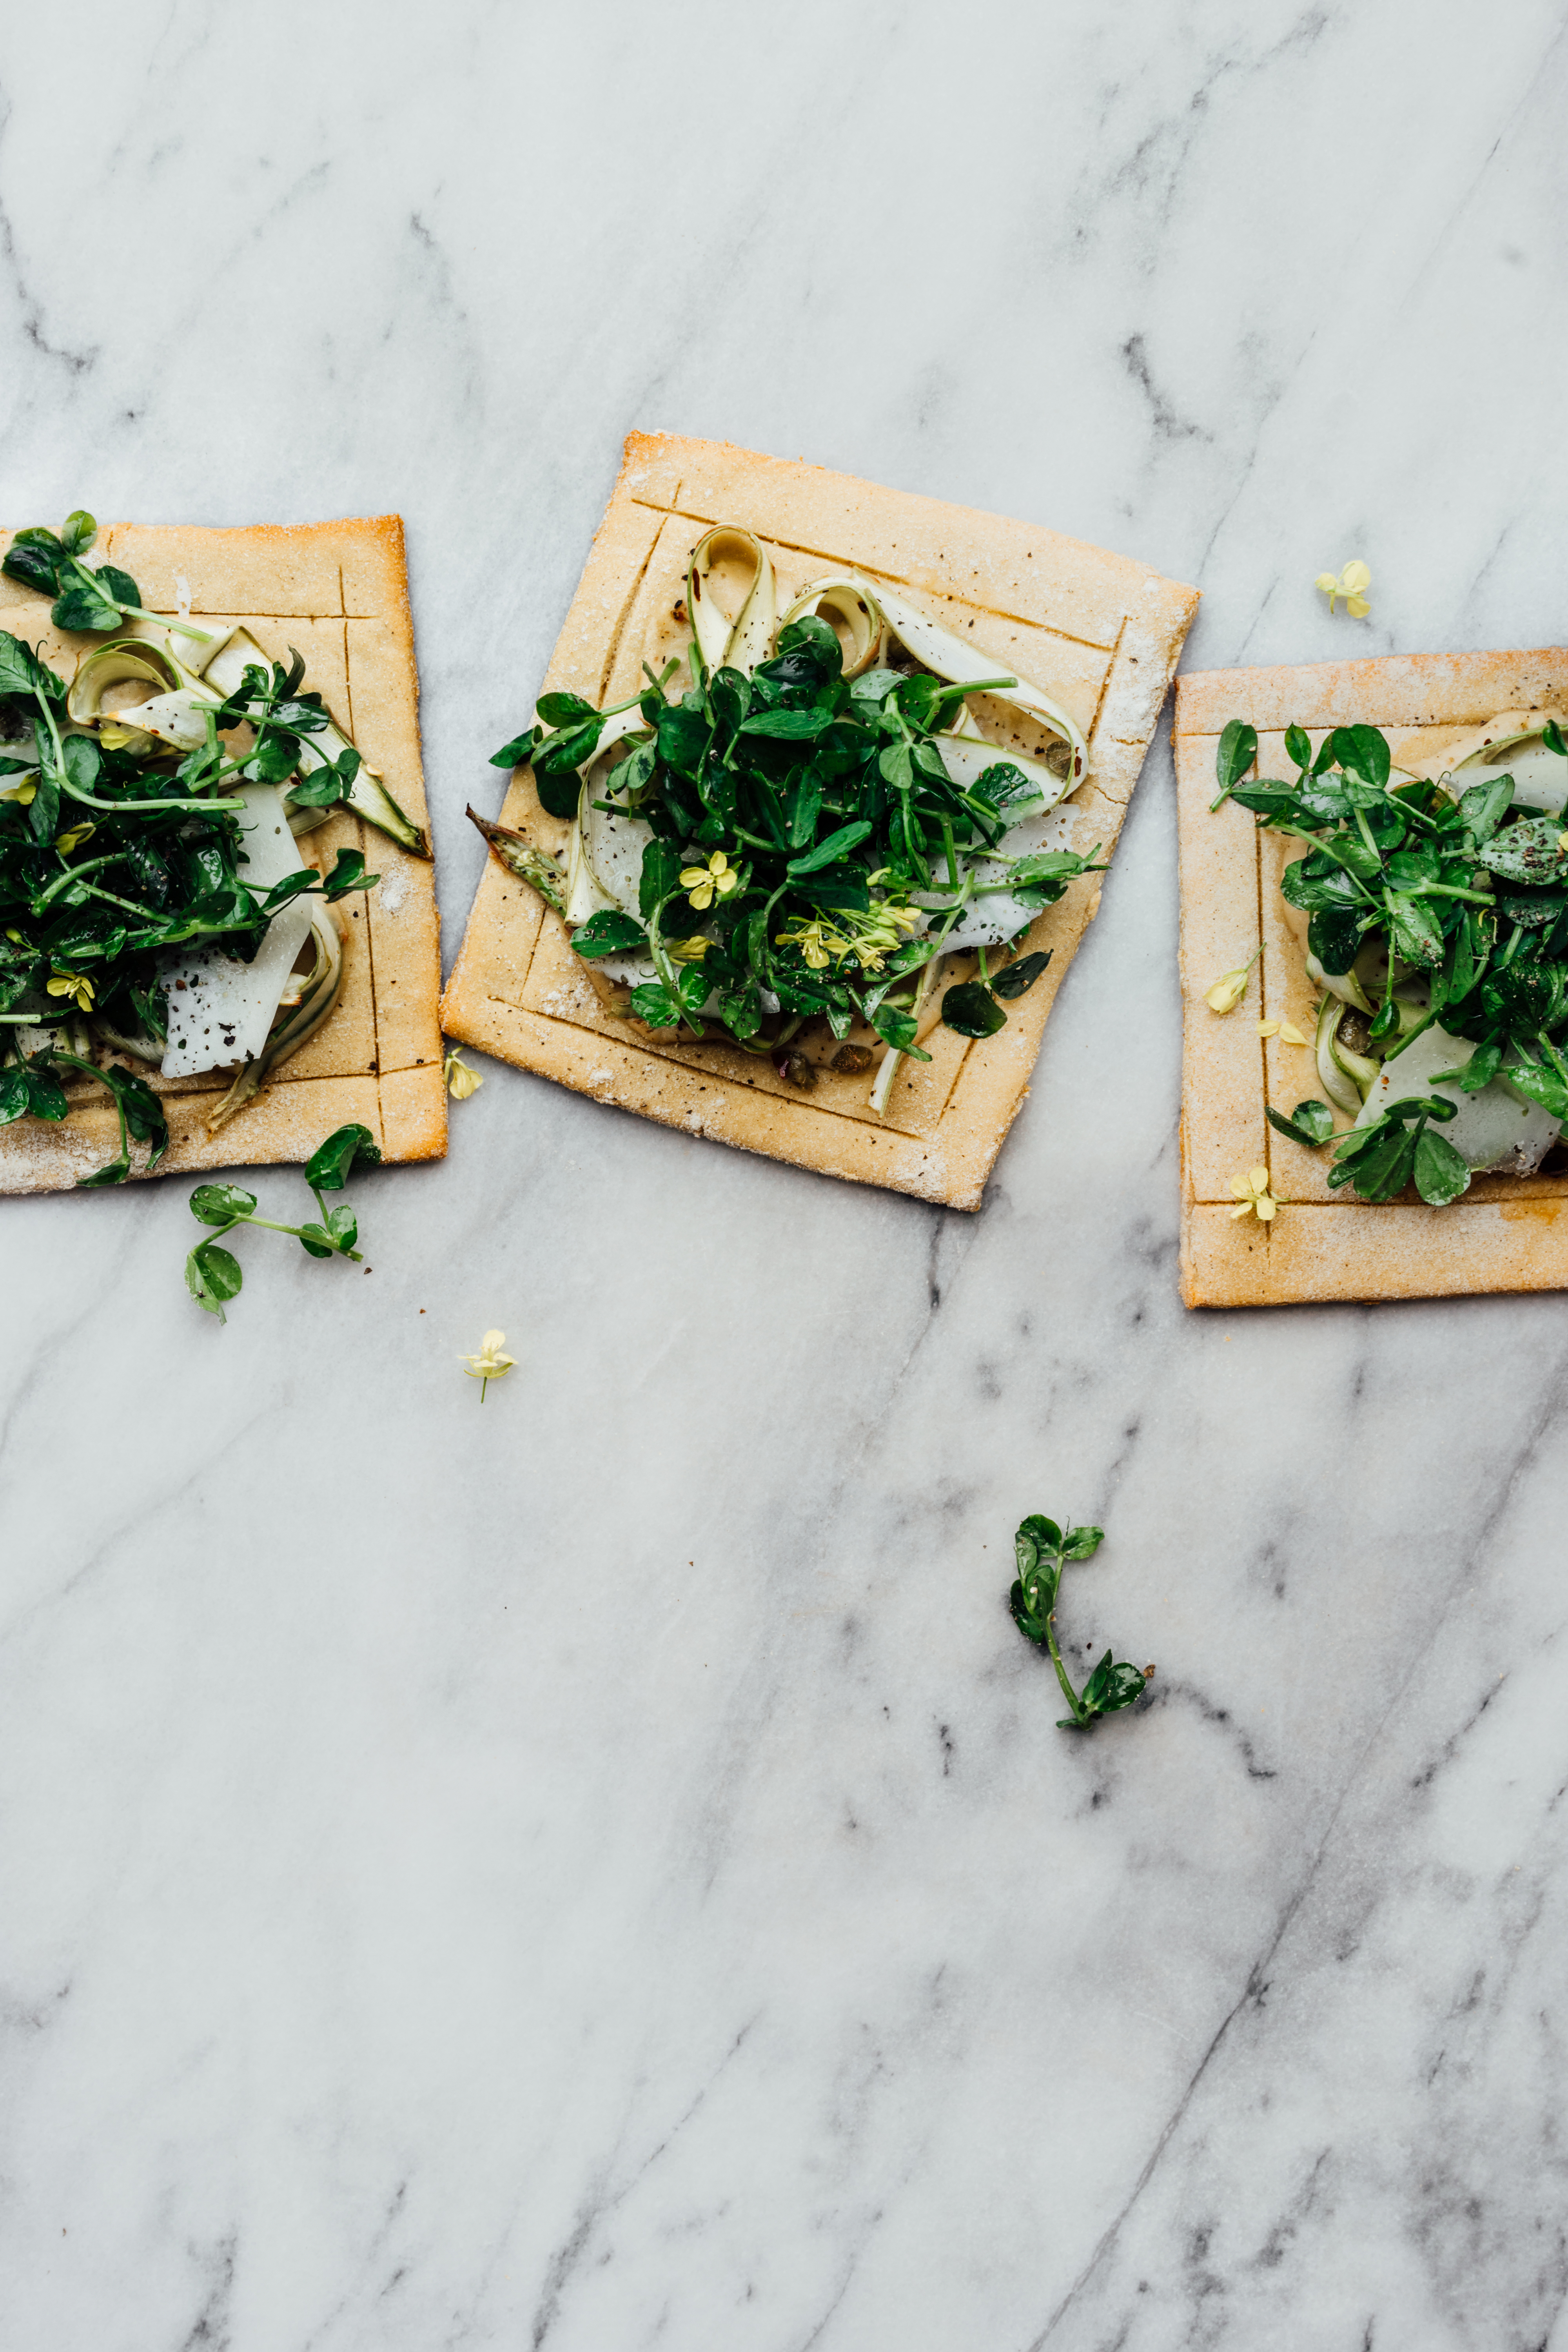 Lindsey's Chickpea Pizza with Asparagus and Pea Shoot Tangle | TENDING the TABLE